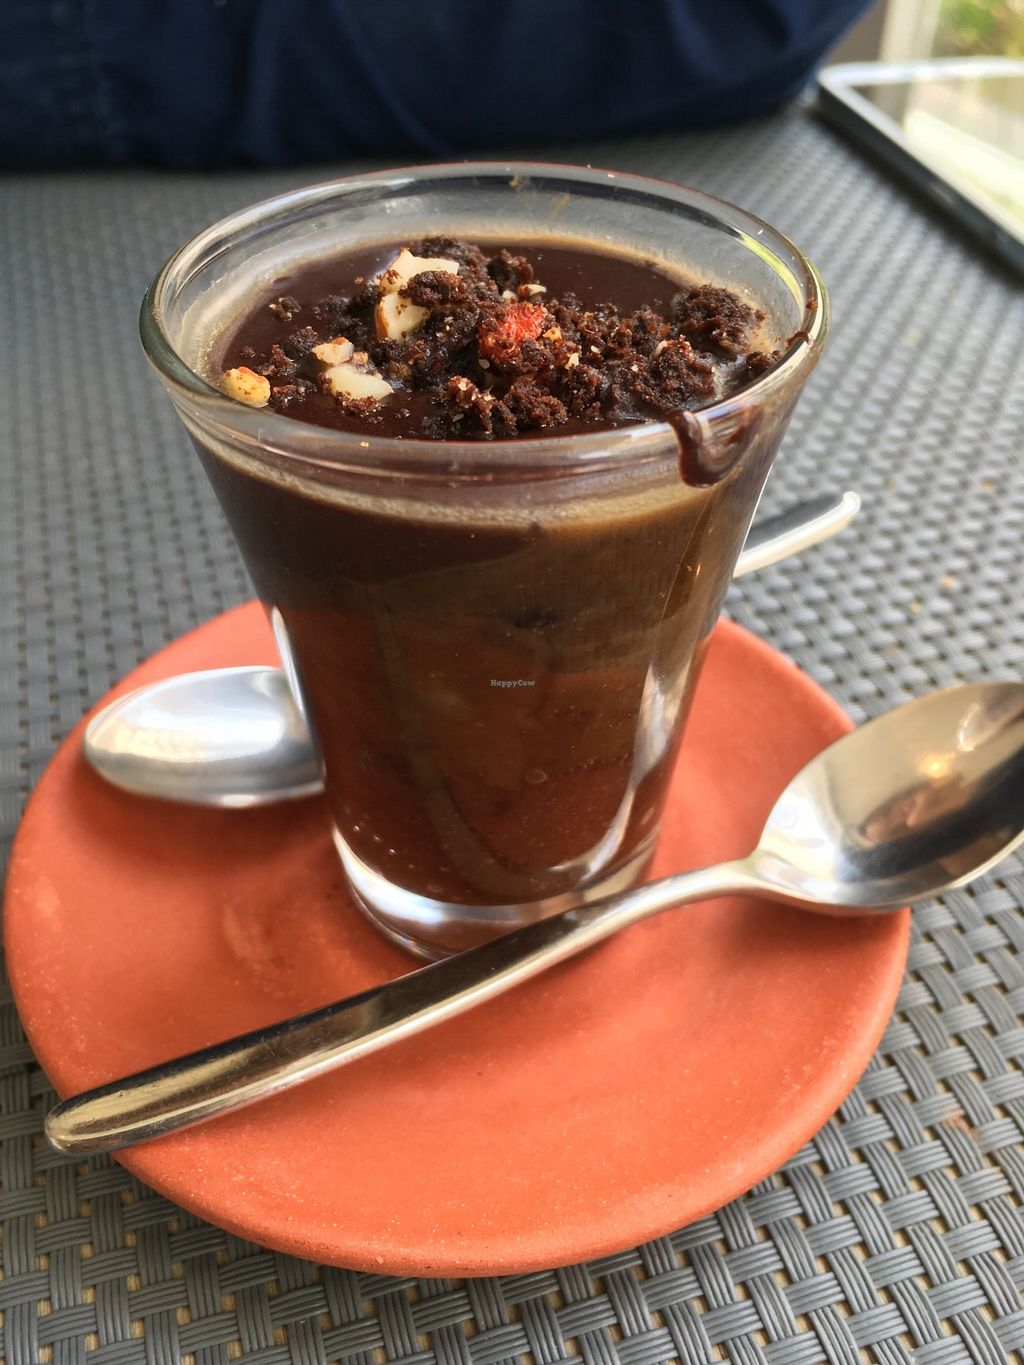 """Photo of Polen Restaurant  by <a href=""""/members/profile/peas-full"""">peas-full</a> <br/>chocolate mousse DE-LI-CIOUS <br/> December 13, 2017  - <a href='/contact/abuse/image/107055/335227'>Report</a>"""